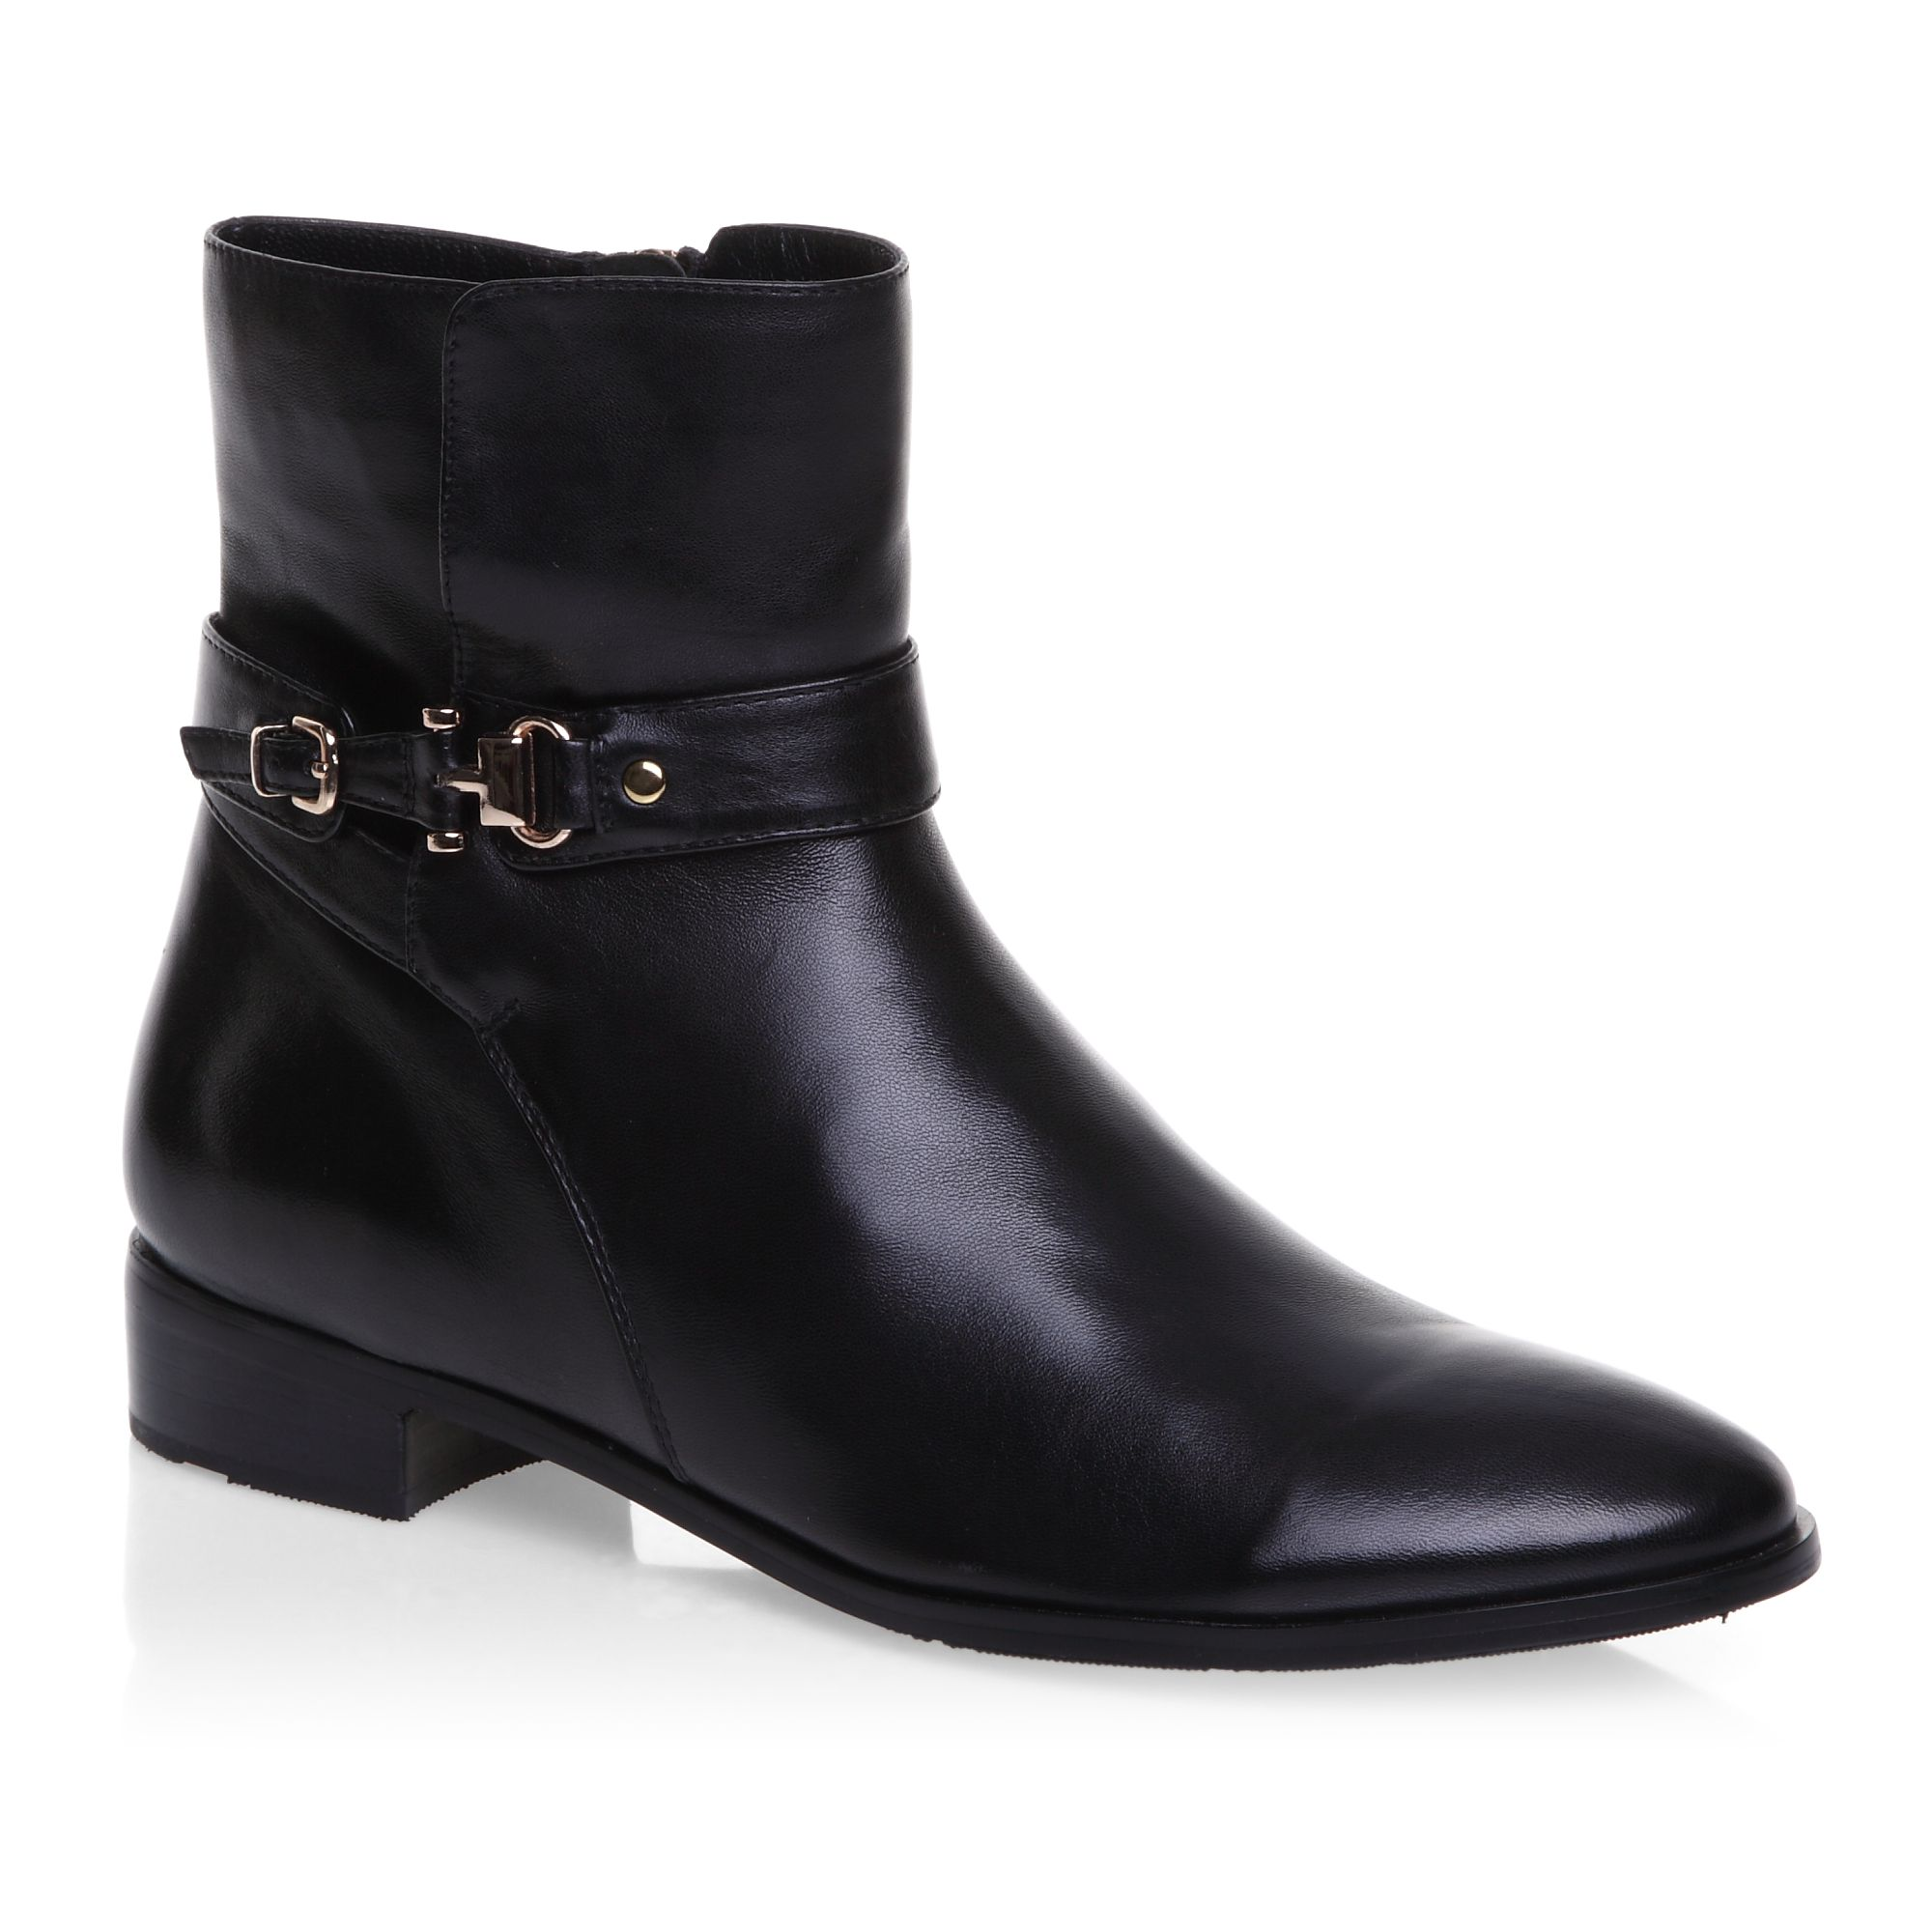 Gold buckle detailed ankle boots